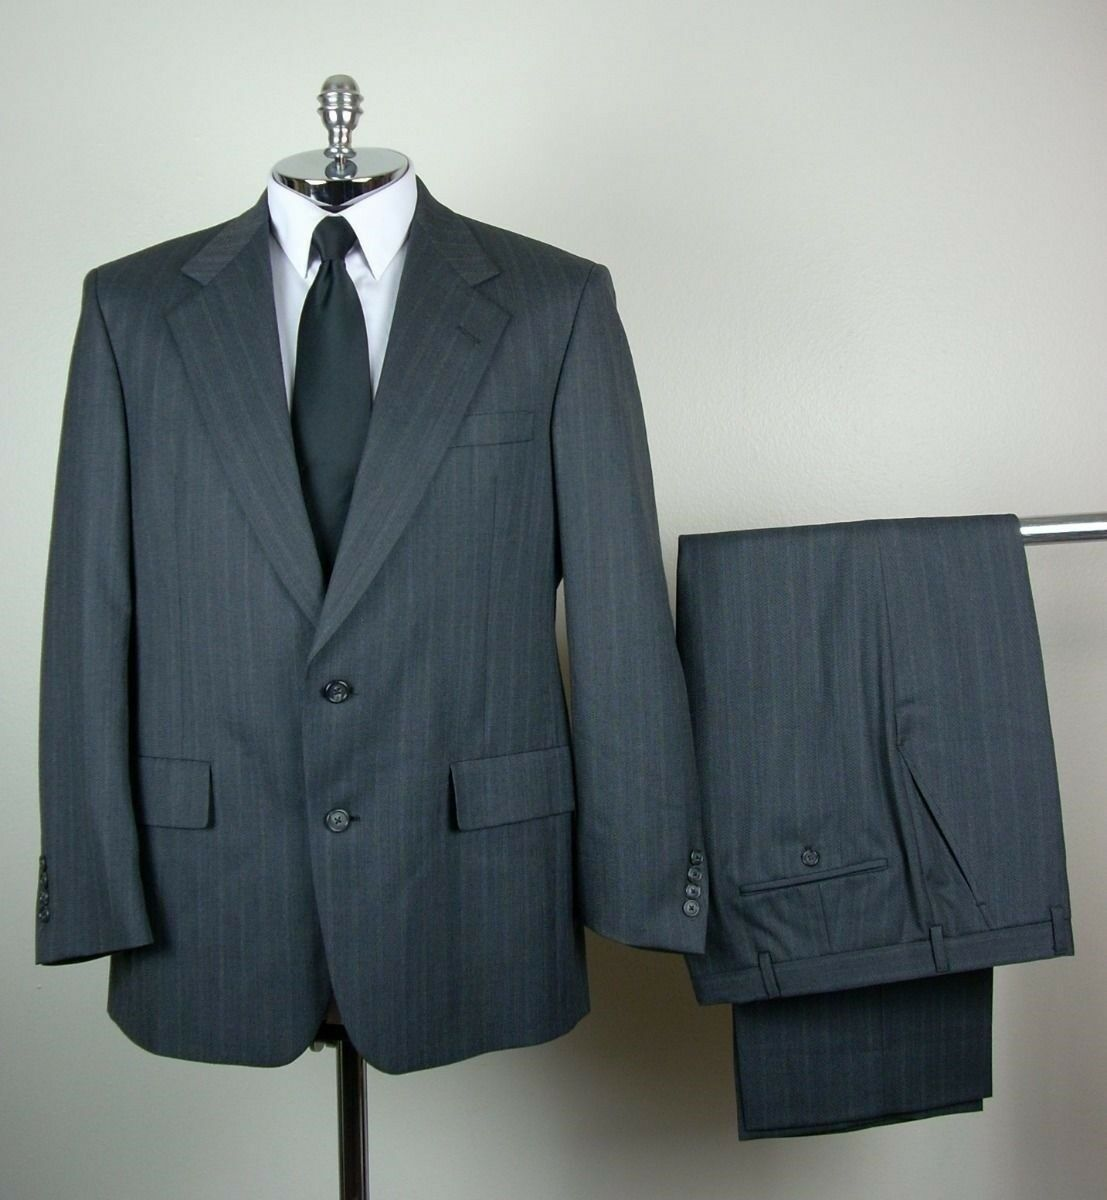 HART SCHAFFNER & MARX  Herren grau PURE VIRGIN WOOL Two Button Suit Größe 41 S